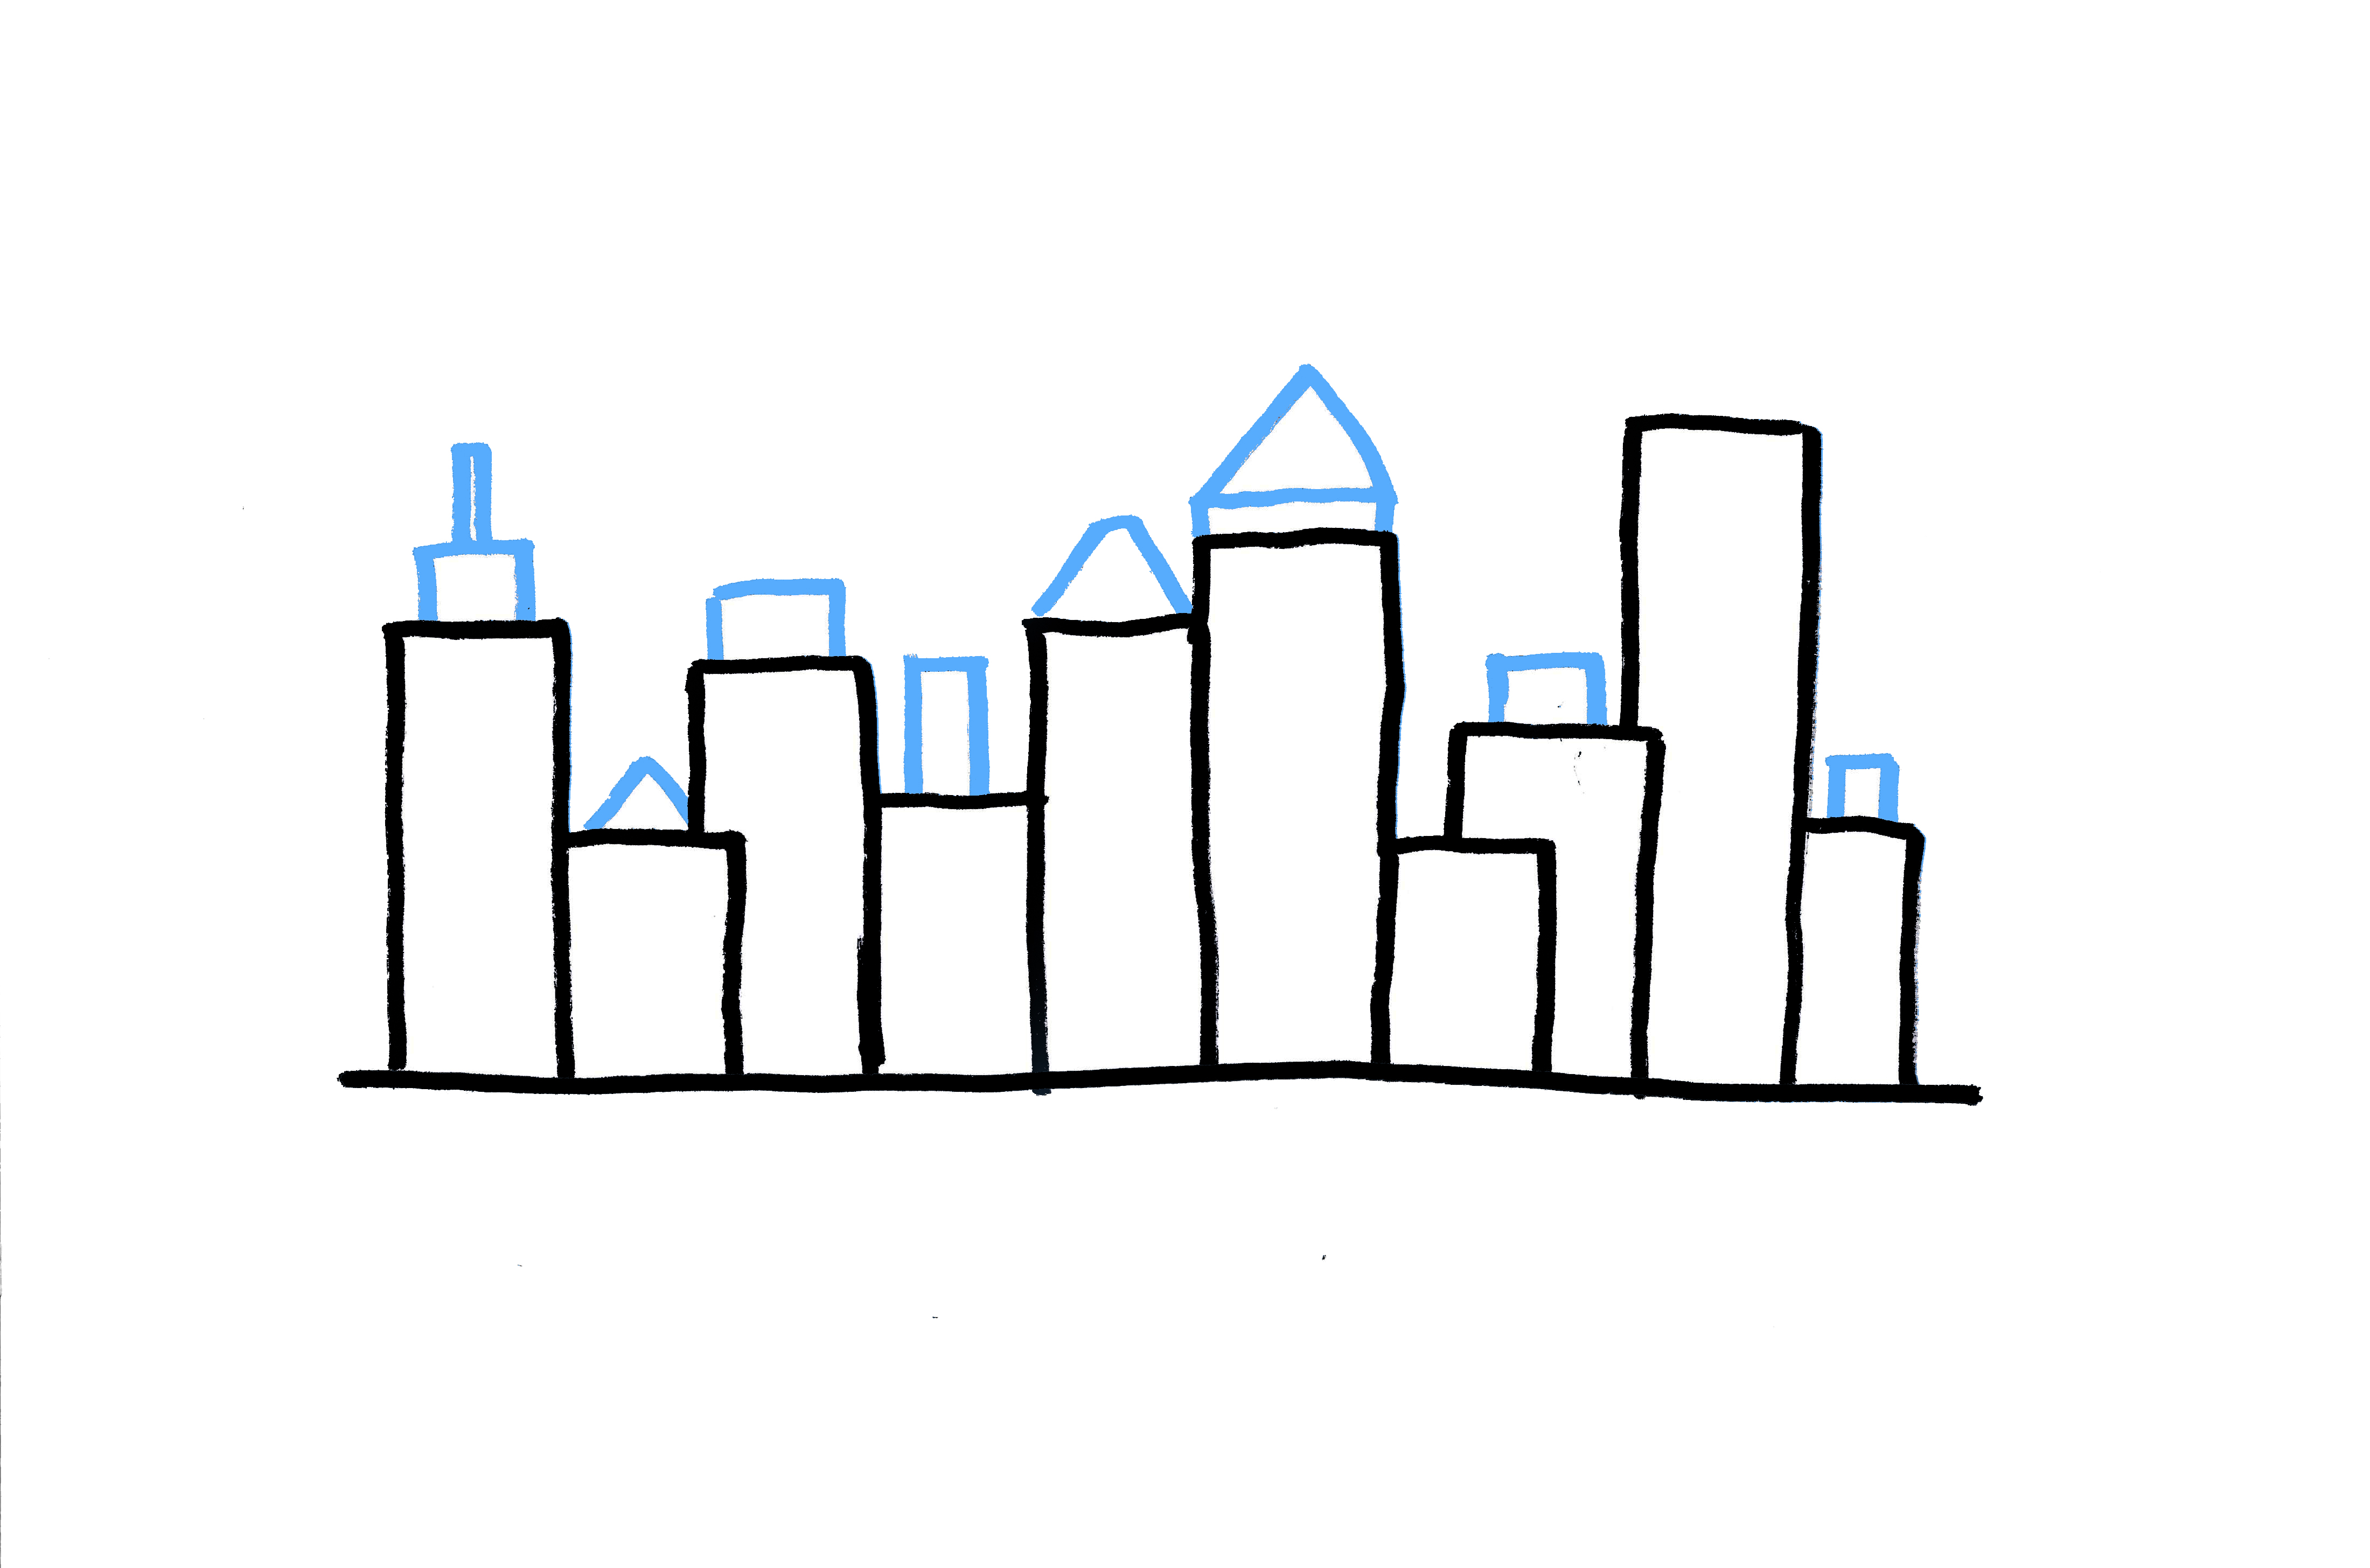 4400x2911 How To Draw A City Skyline 3 Ways